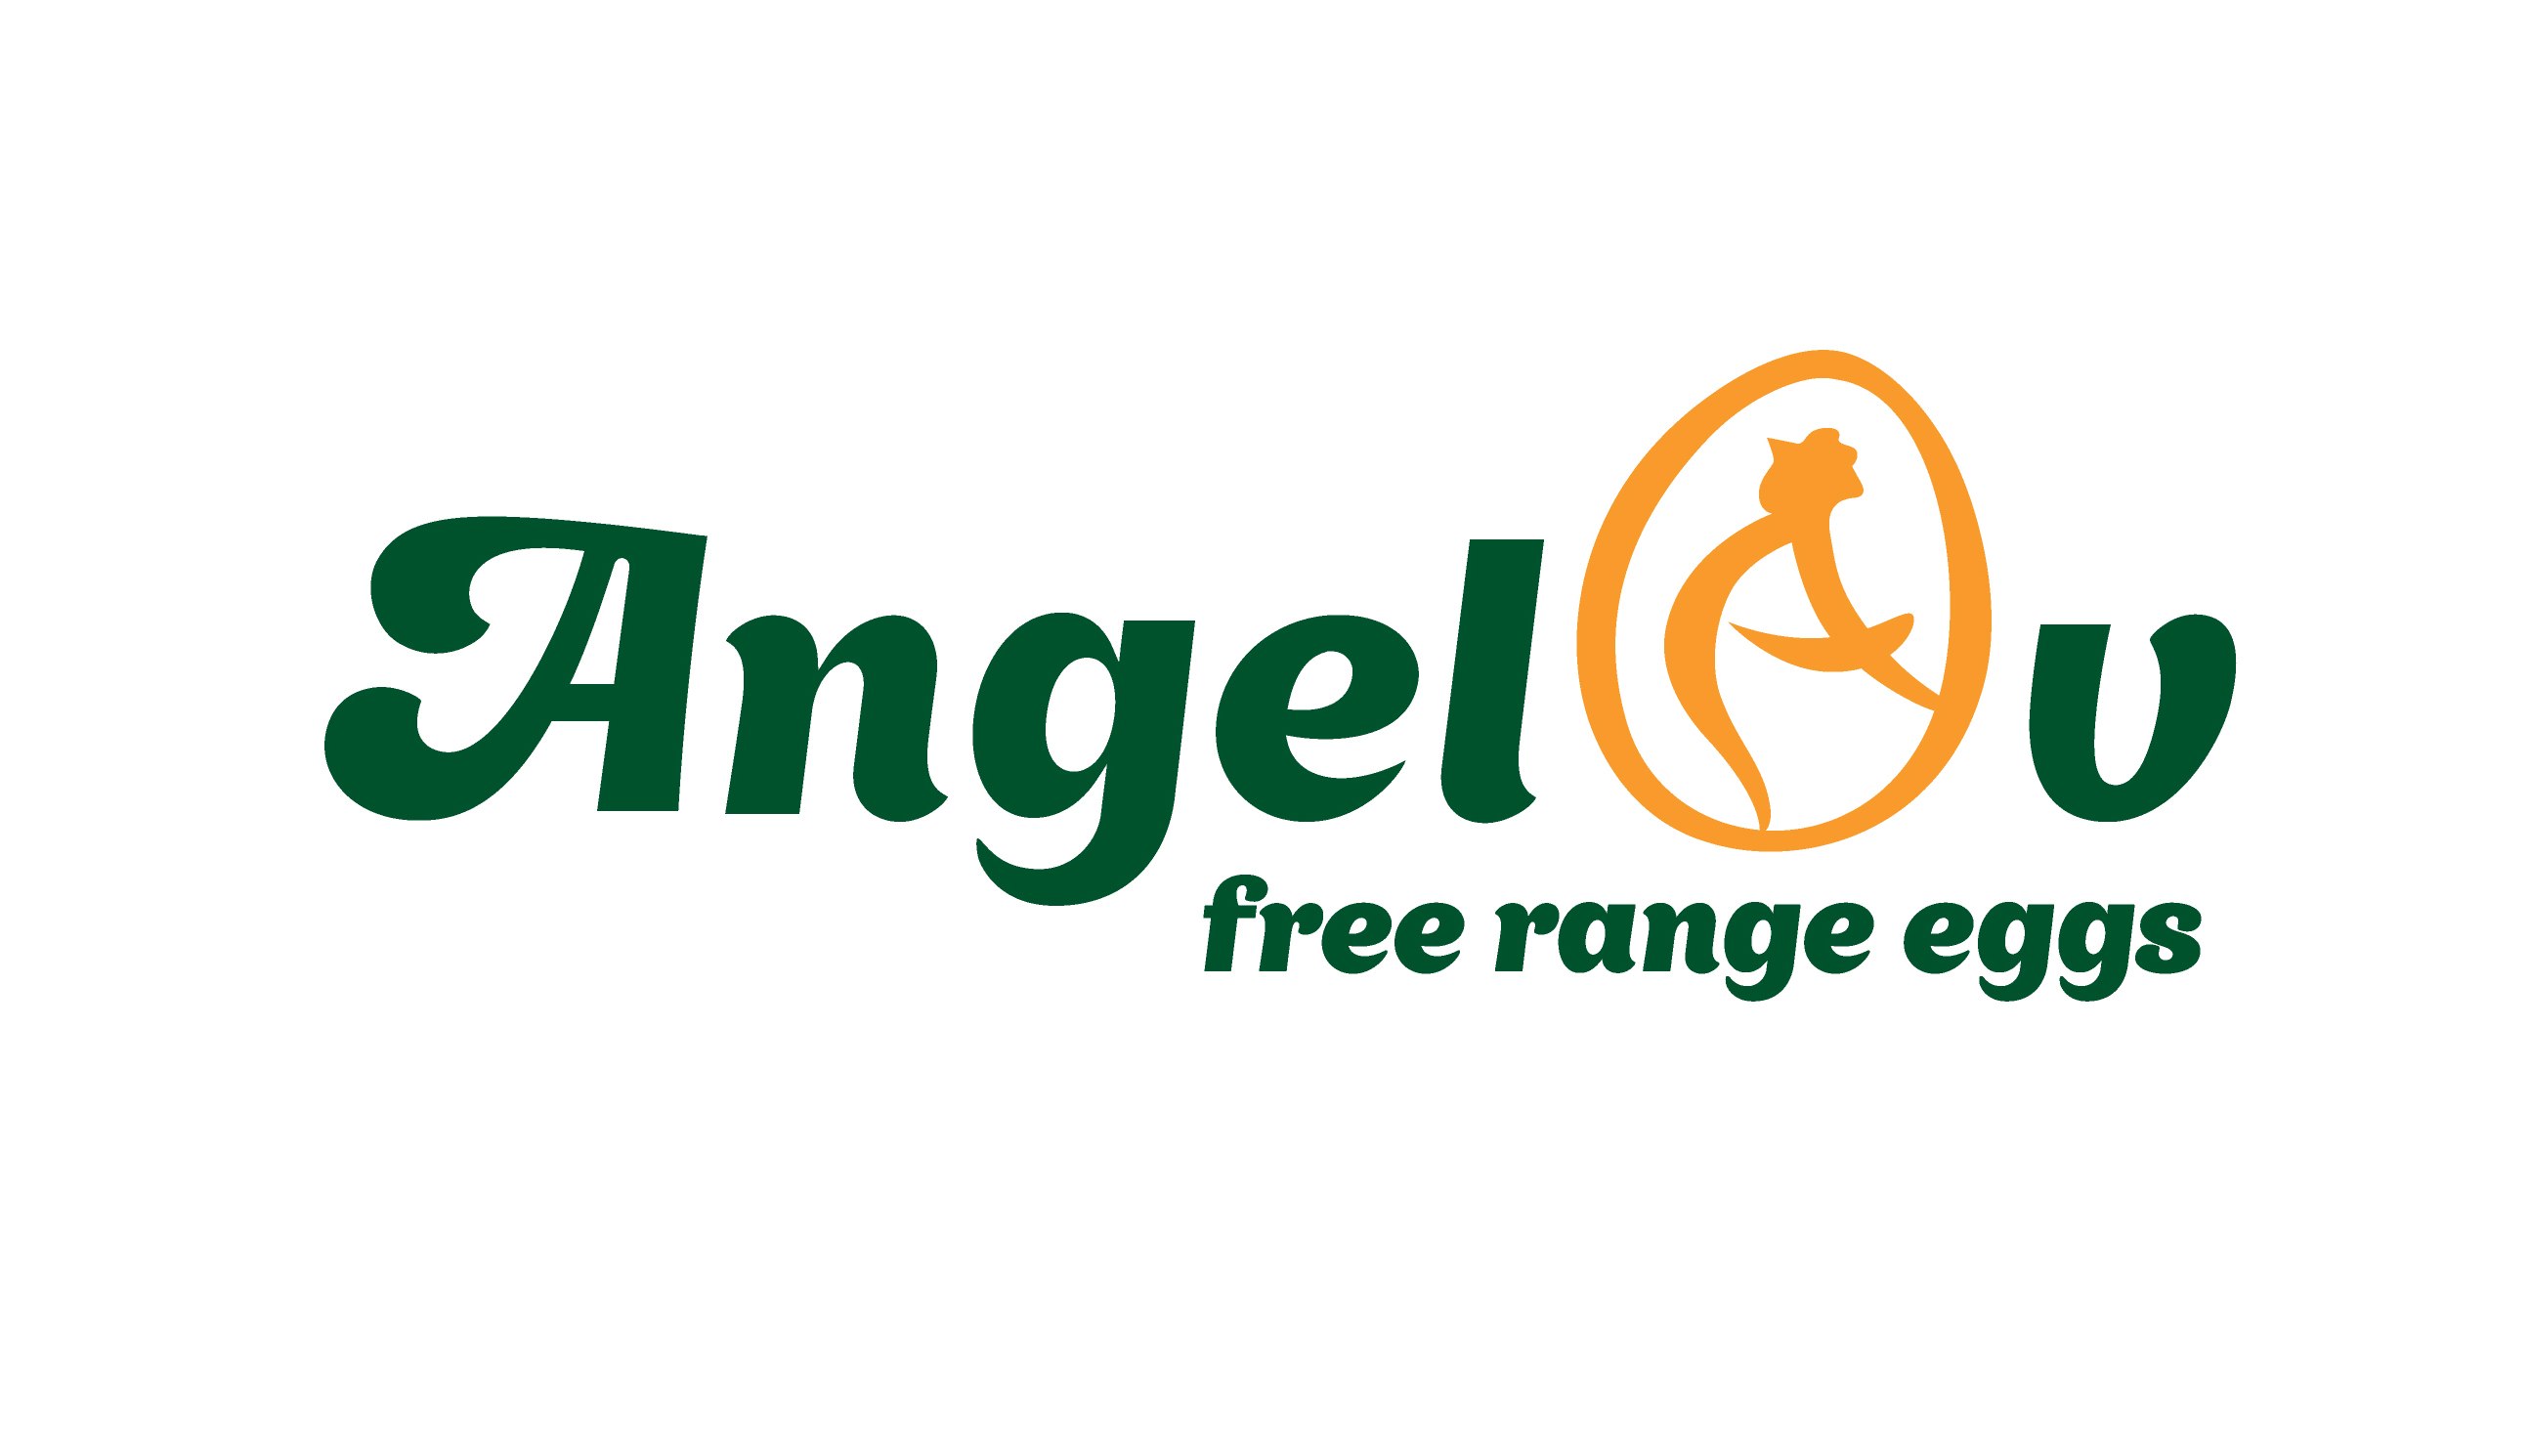 ребрандиране Angelov-eggs-logo